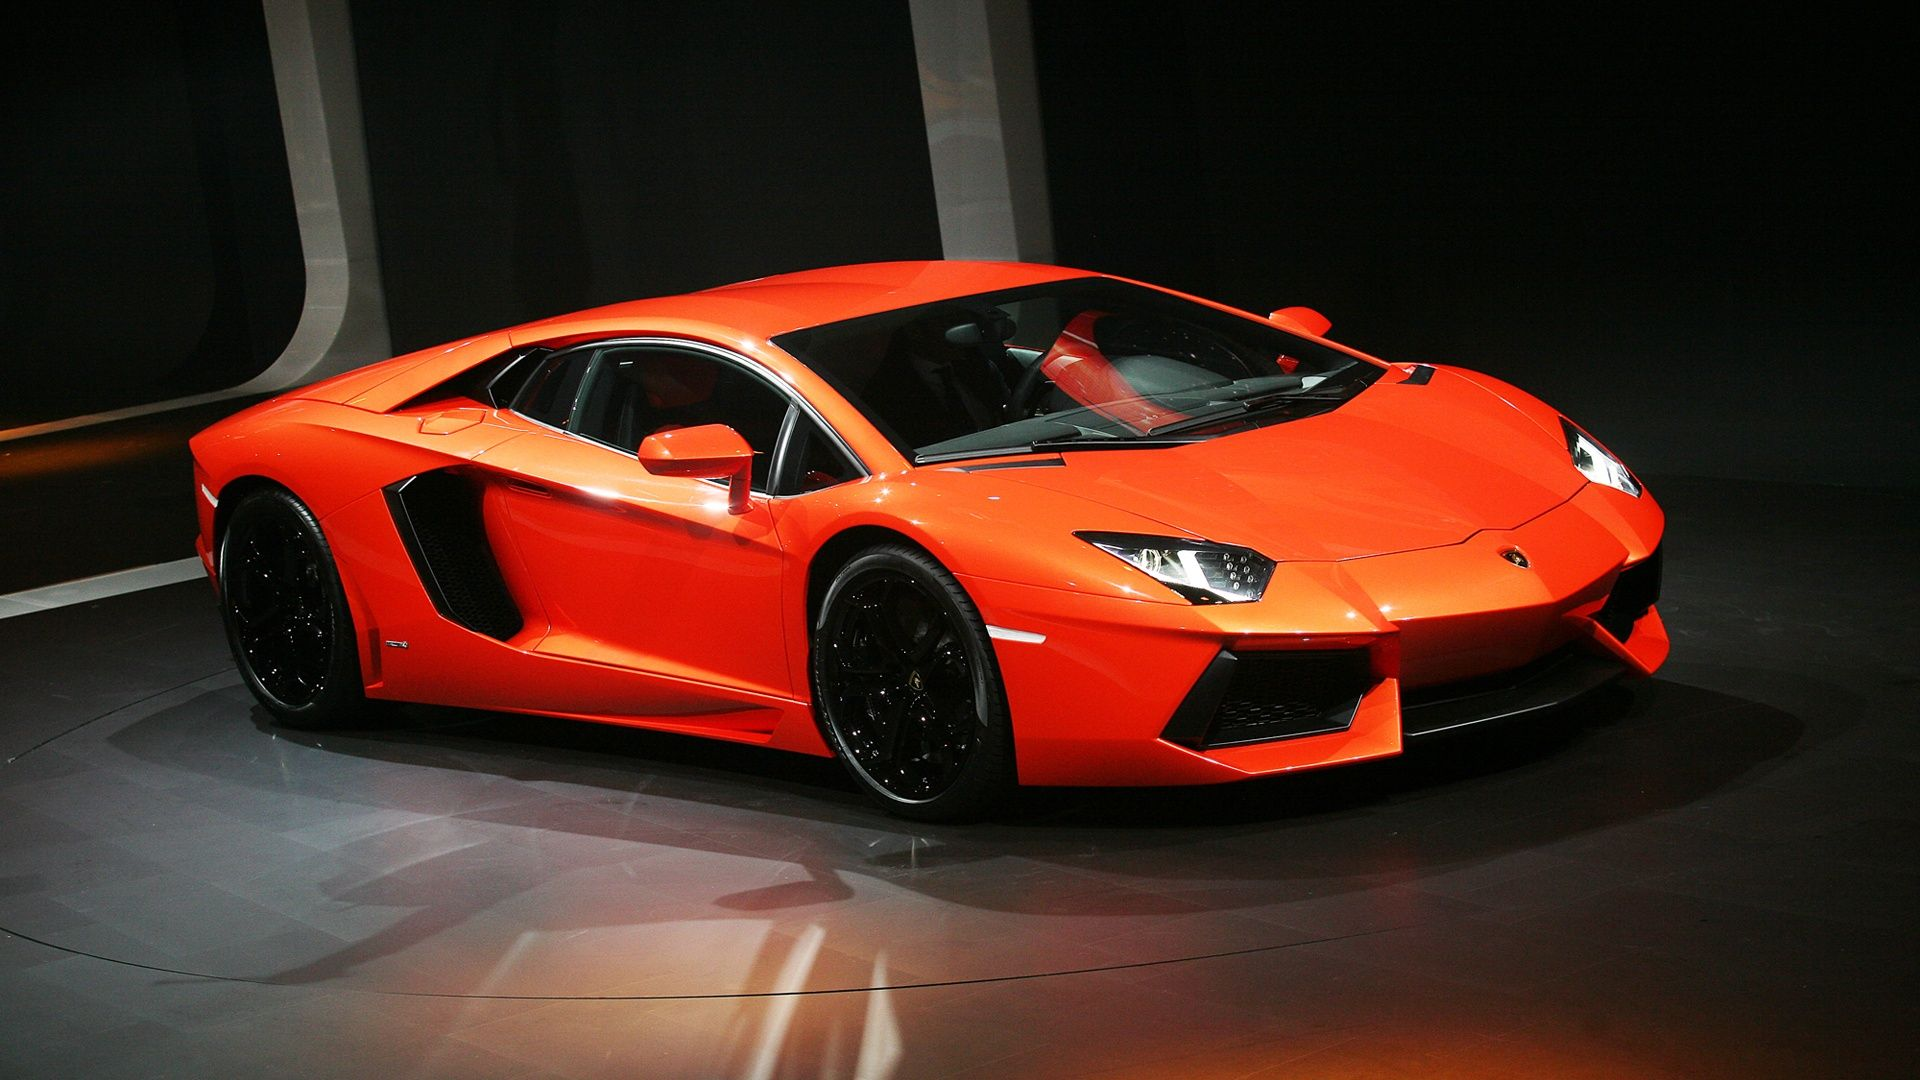 Hd Wallpaper Lambhorgini Aventador Wallpaper Sports Car Wallpaper Lamborghini Aventador Sports Car Photos